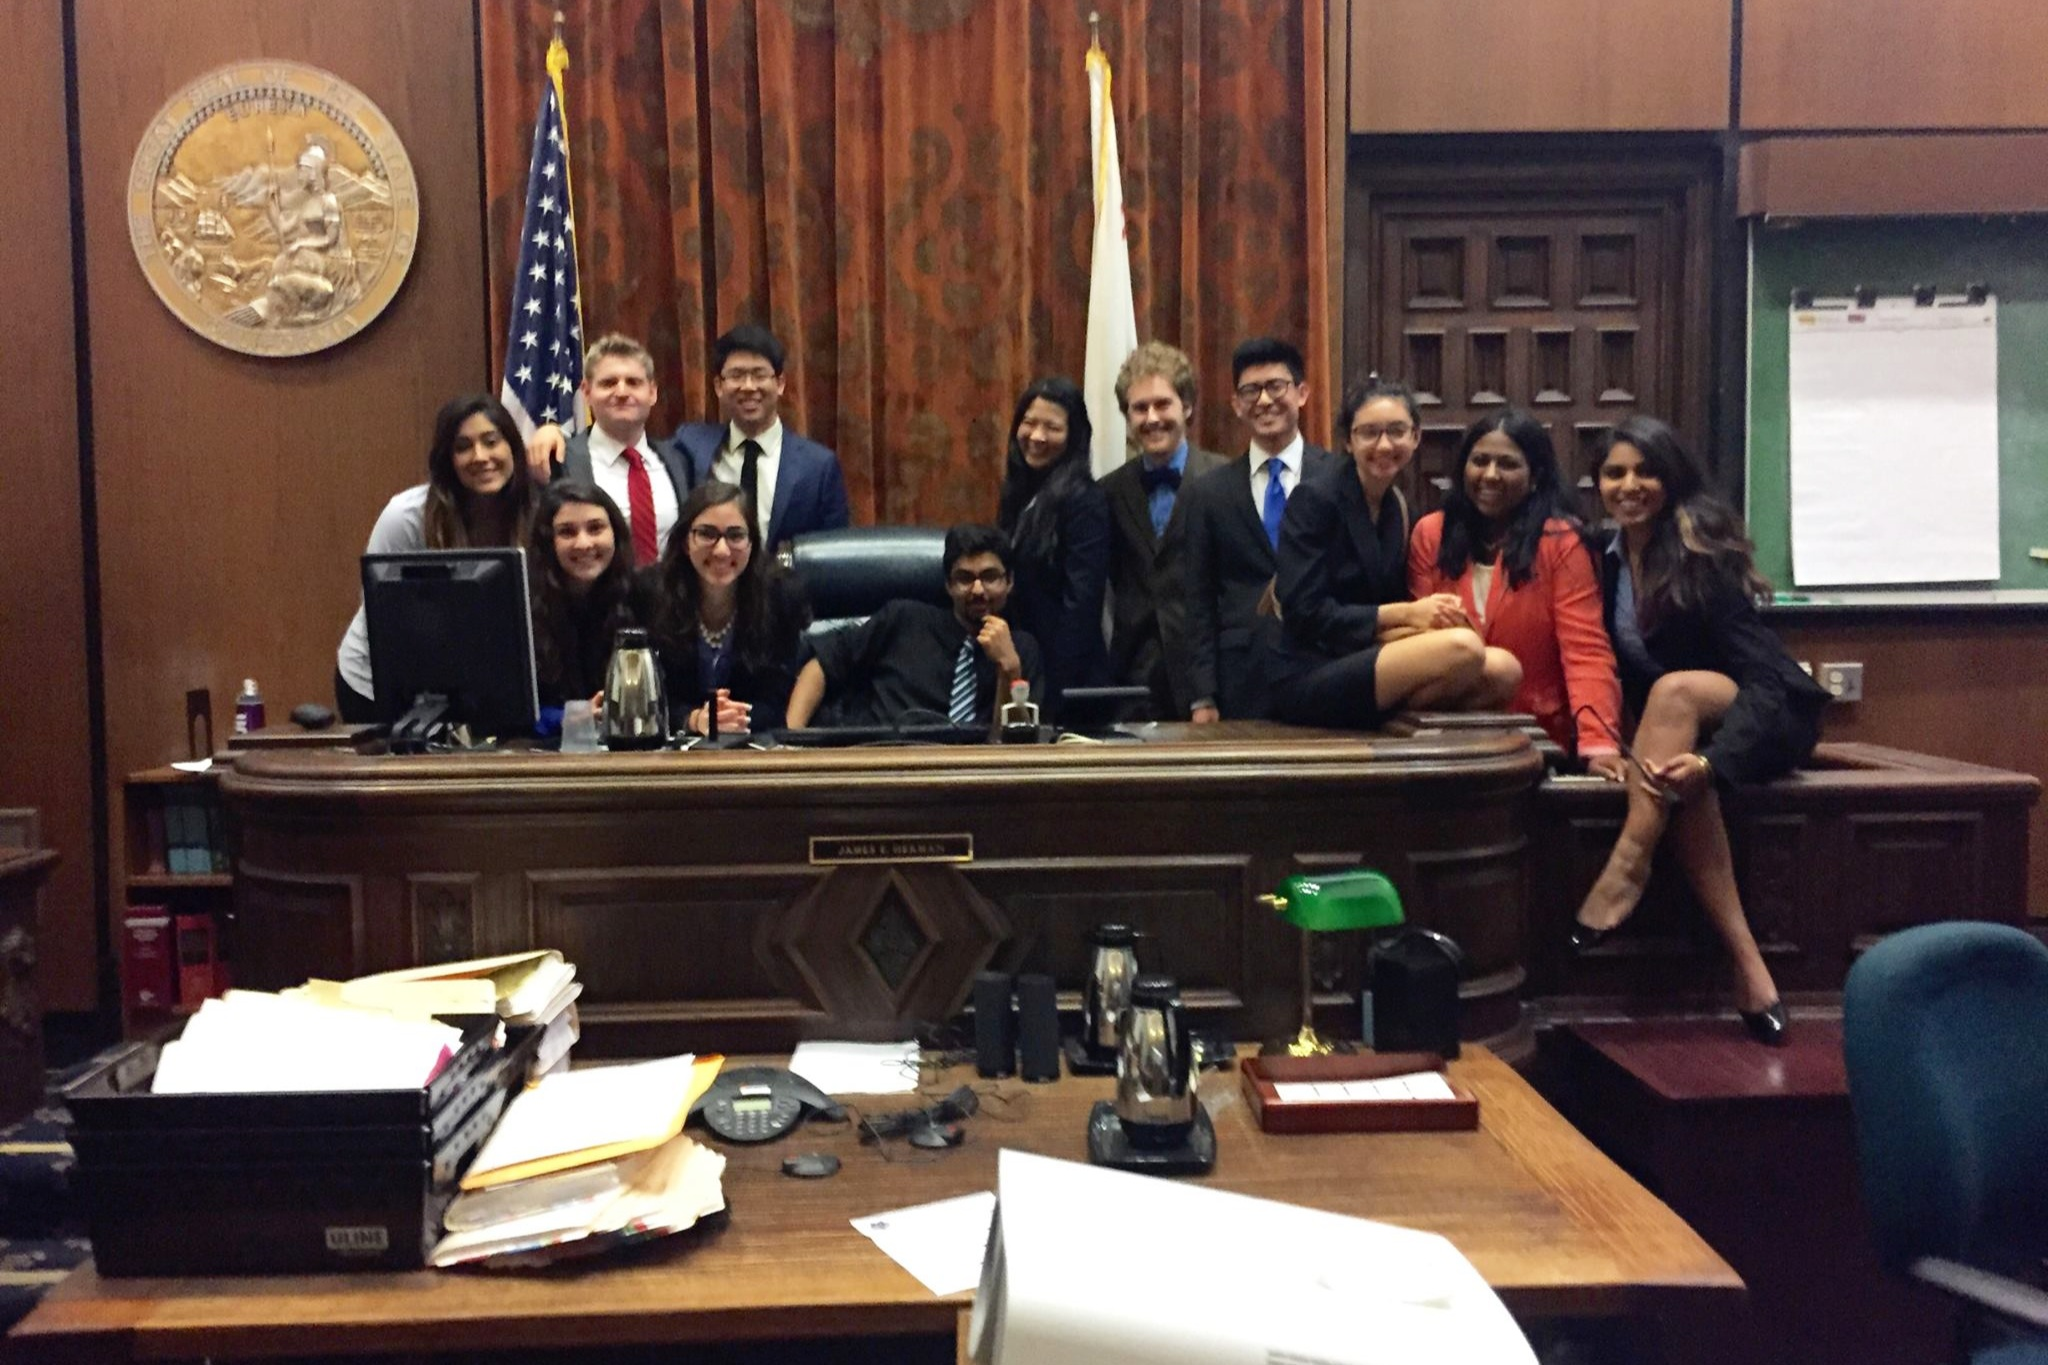 Paradise Invitational (1/10 - 1/11) - CMT kicks off the spring season with a 3rd place finish at the Paradise Invitational in Santa Barbara, California! In addition, the Golden Bears dominated the individual awards:Kevin Gu, Outstanding Attorney with 18/20 ranksRachel Thomasson, Outstanding Witness with 16/20 ranksJustin Tsung, Outstanding Witness with 17/20 ranks; his first mock trial career award!Nisha Srinivasa, Outstanding Witness with 19/20 ranksCongratulations to Kevin Gu, Nisha Srinivasa, Justin Tsung, and Marshall Lodge for earning honors as top two-way competitors.